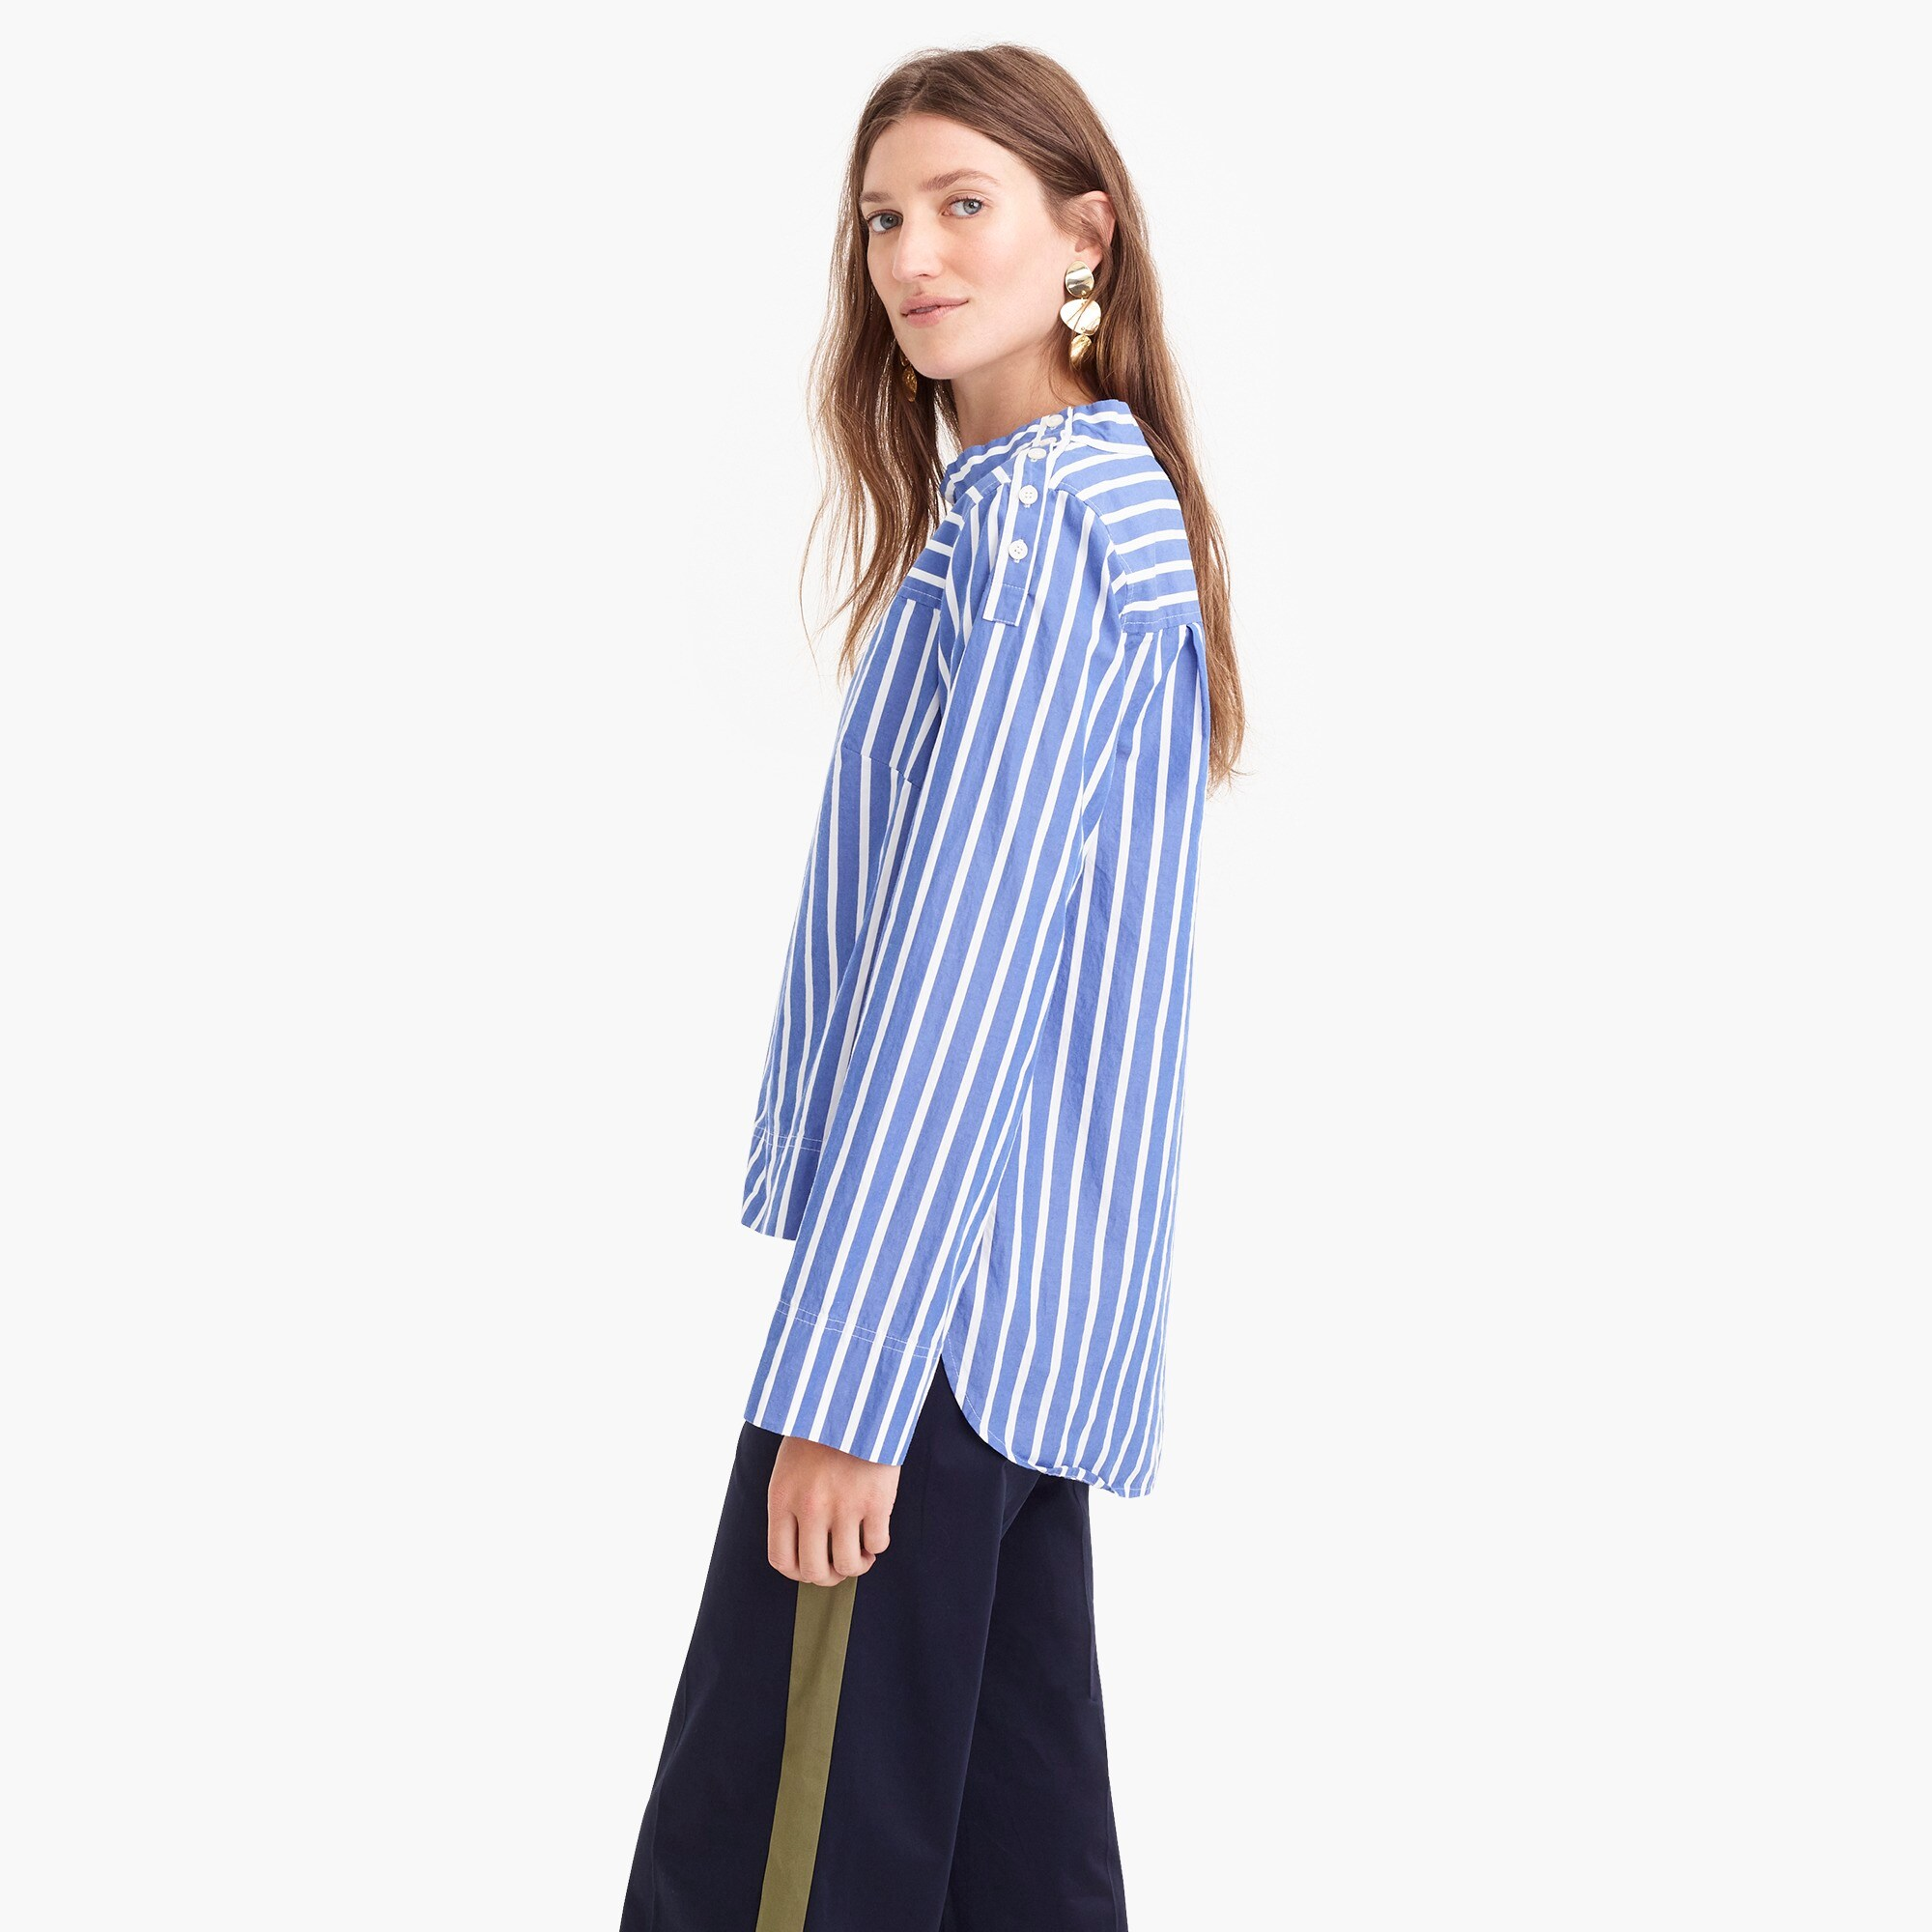 Image 5 for Tall funnelneck striped shirt